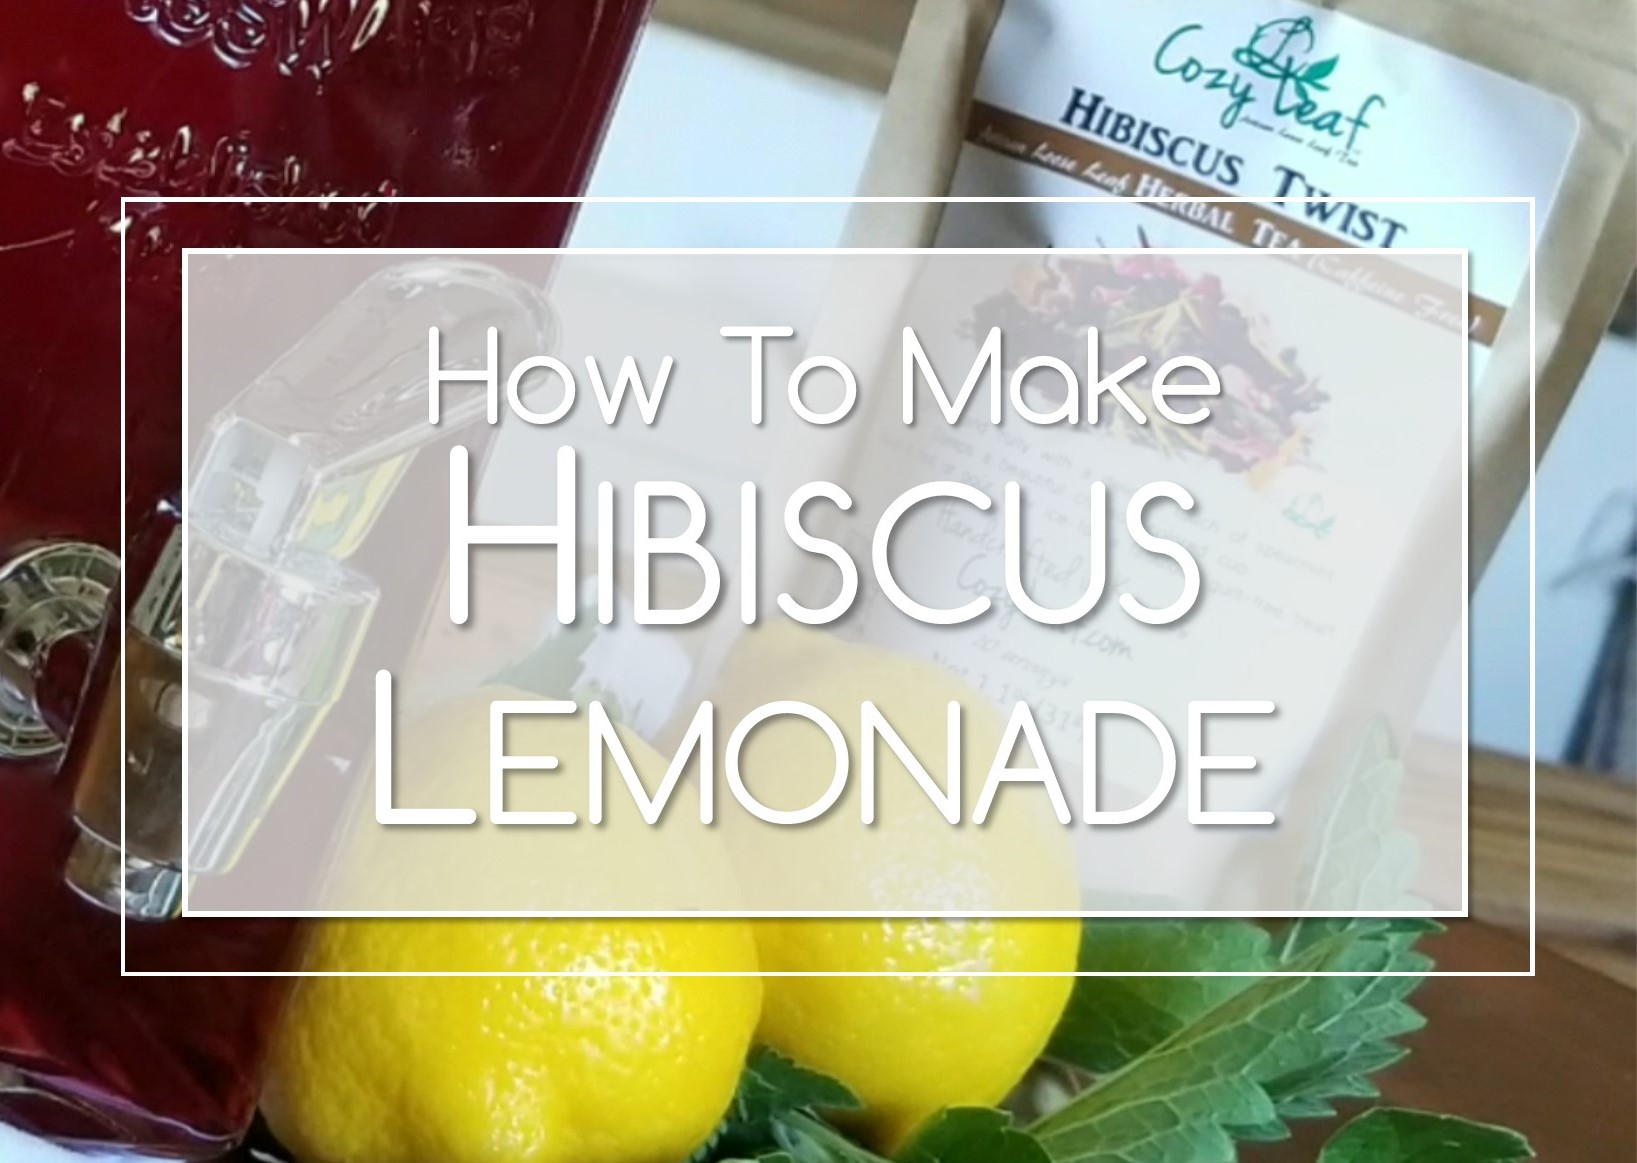 hibiscus lemonade recipe.jpg